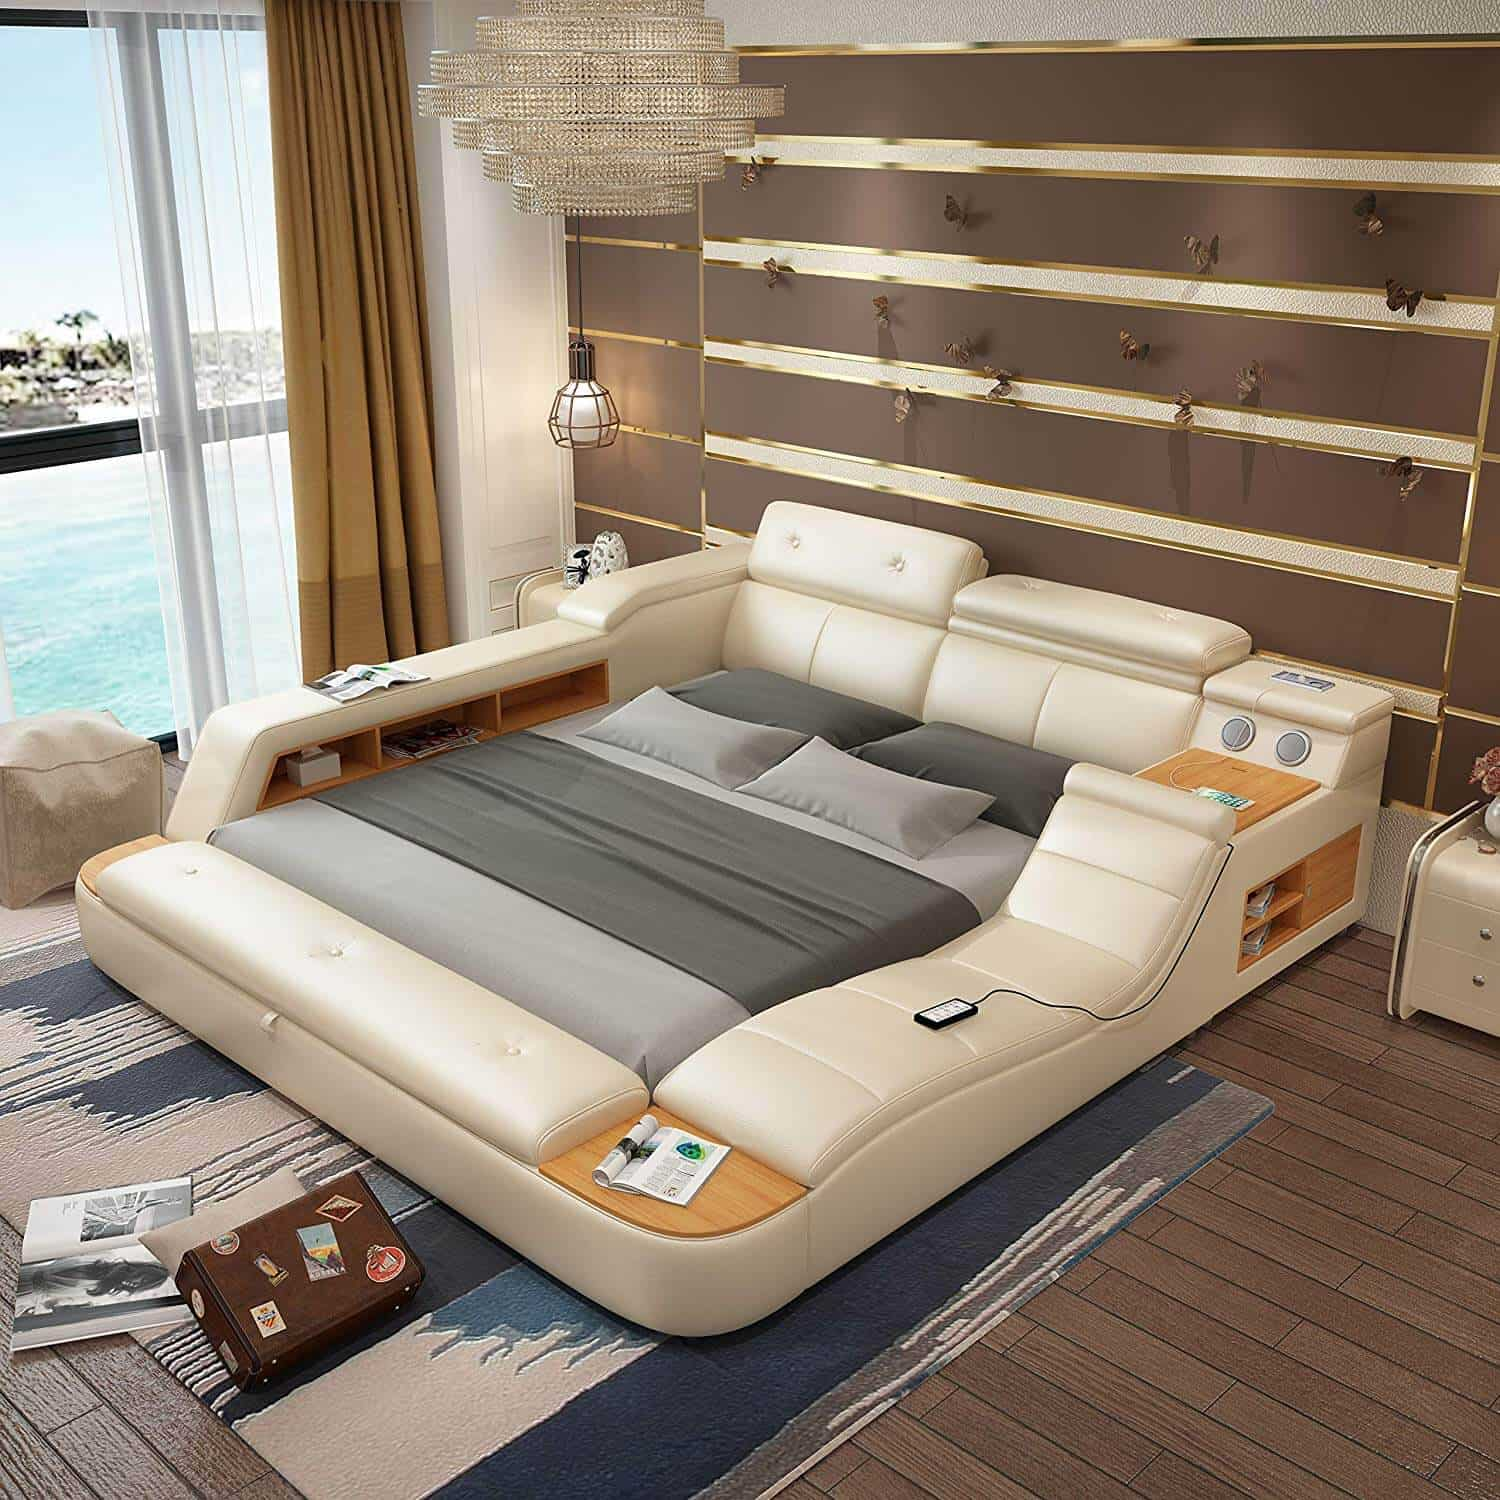 Laxurious storage Bed 13